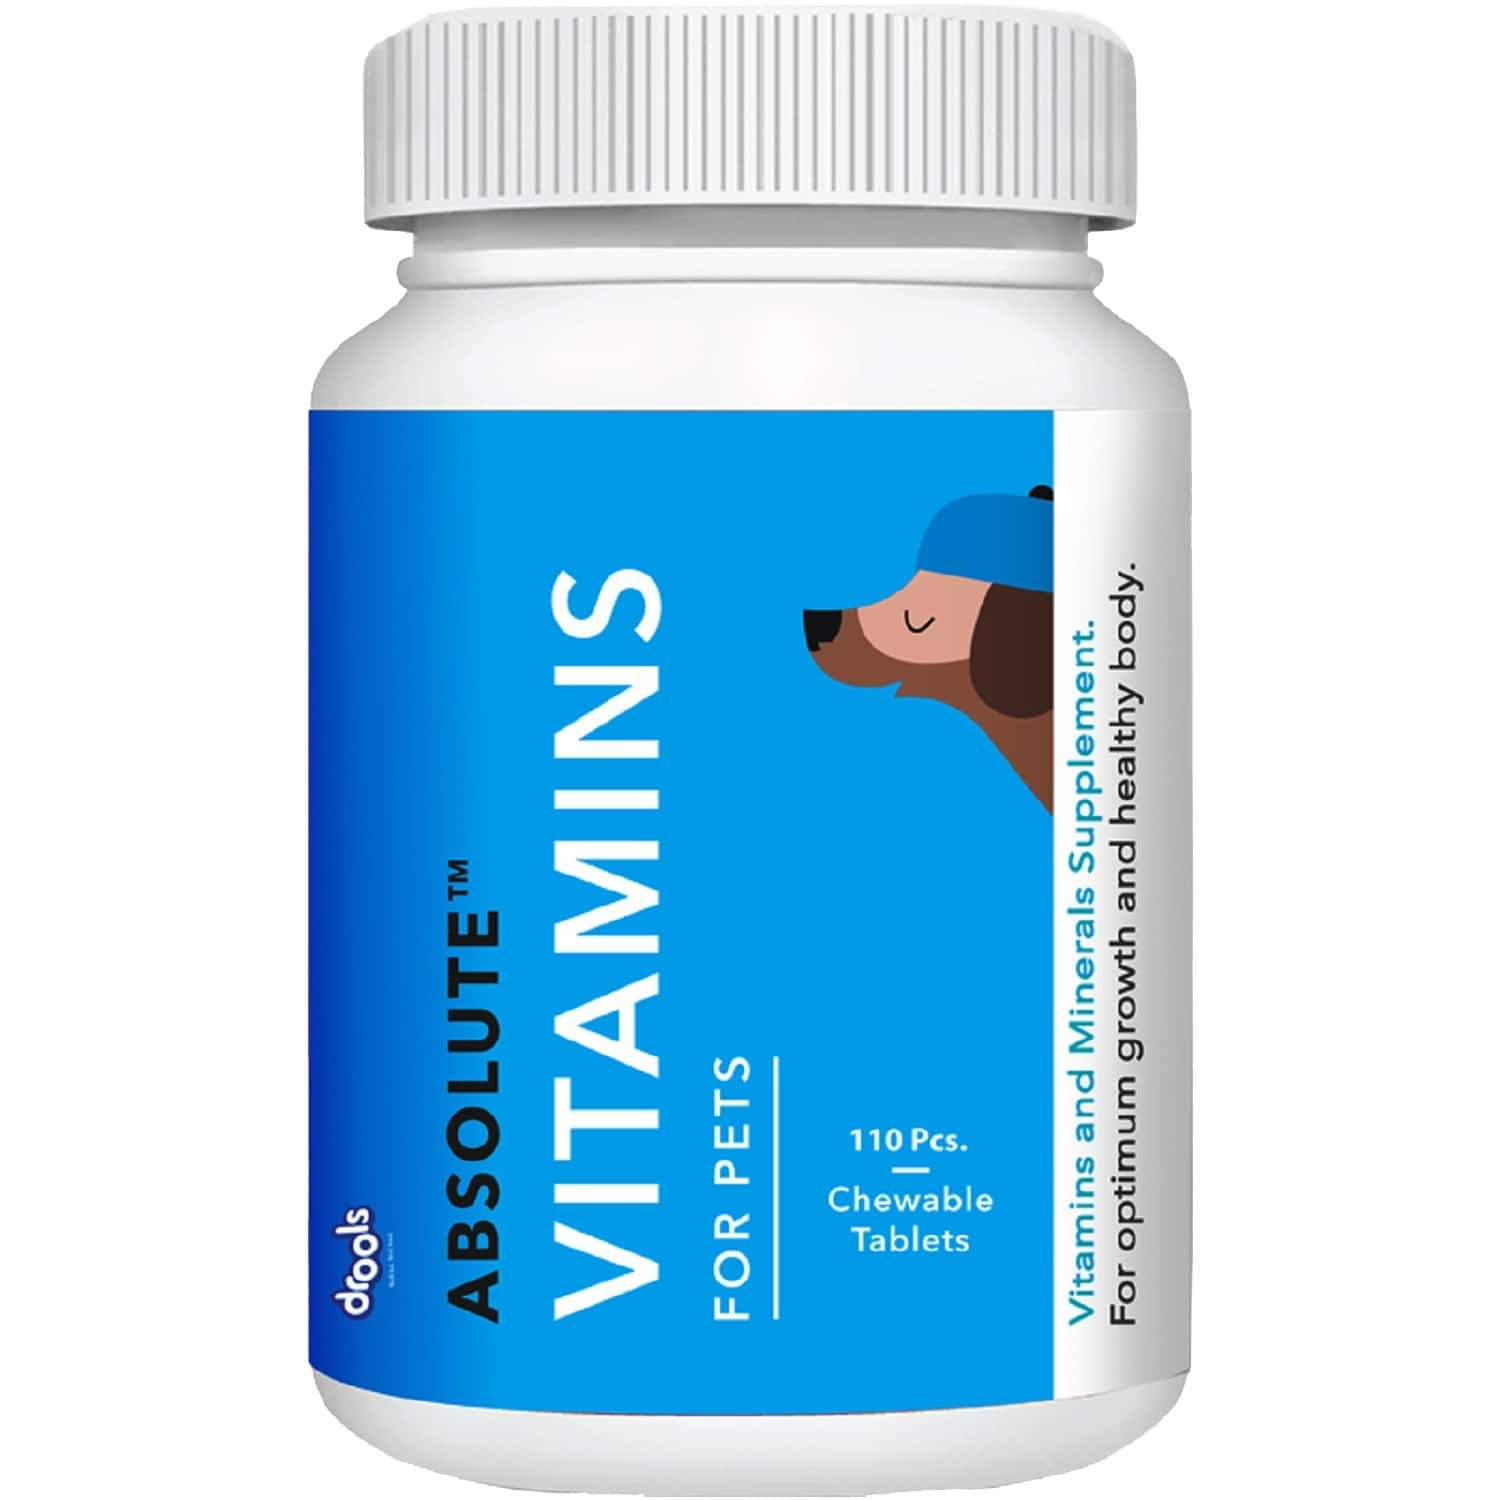 Drools Absolute Vitamin Tablet - Dog Supplement 110 Pieces